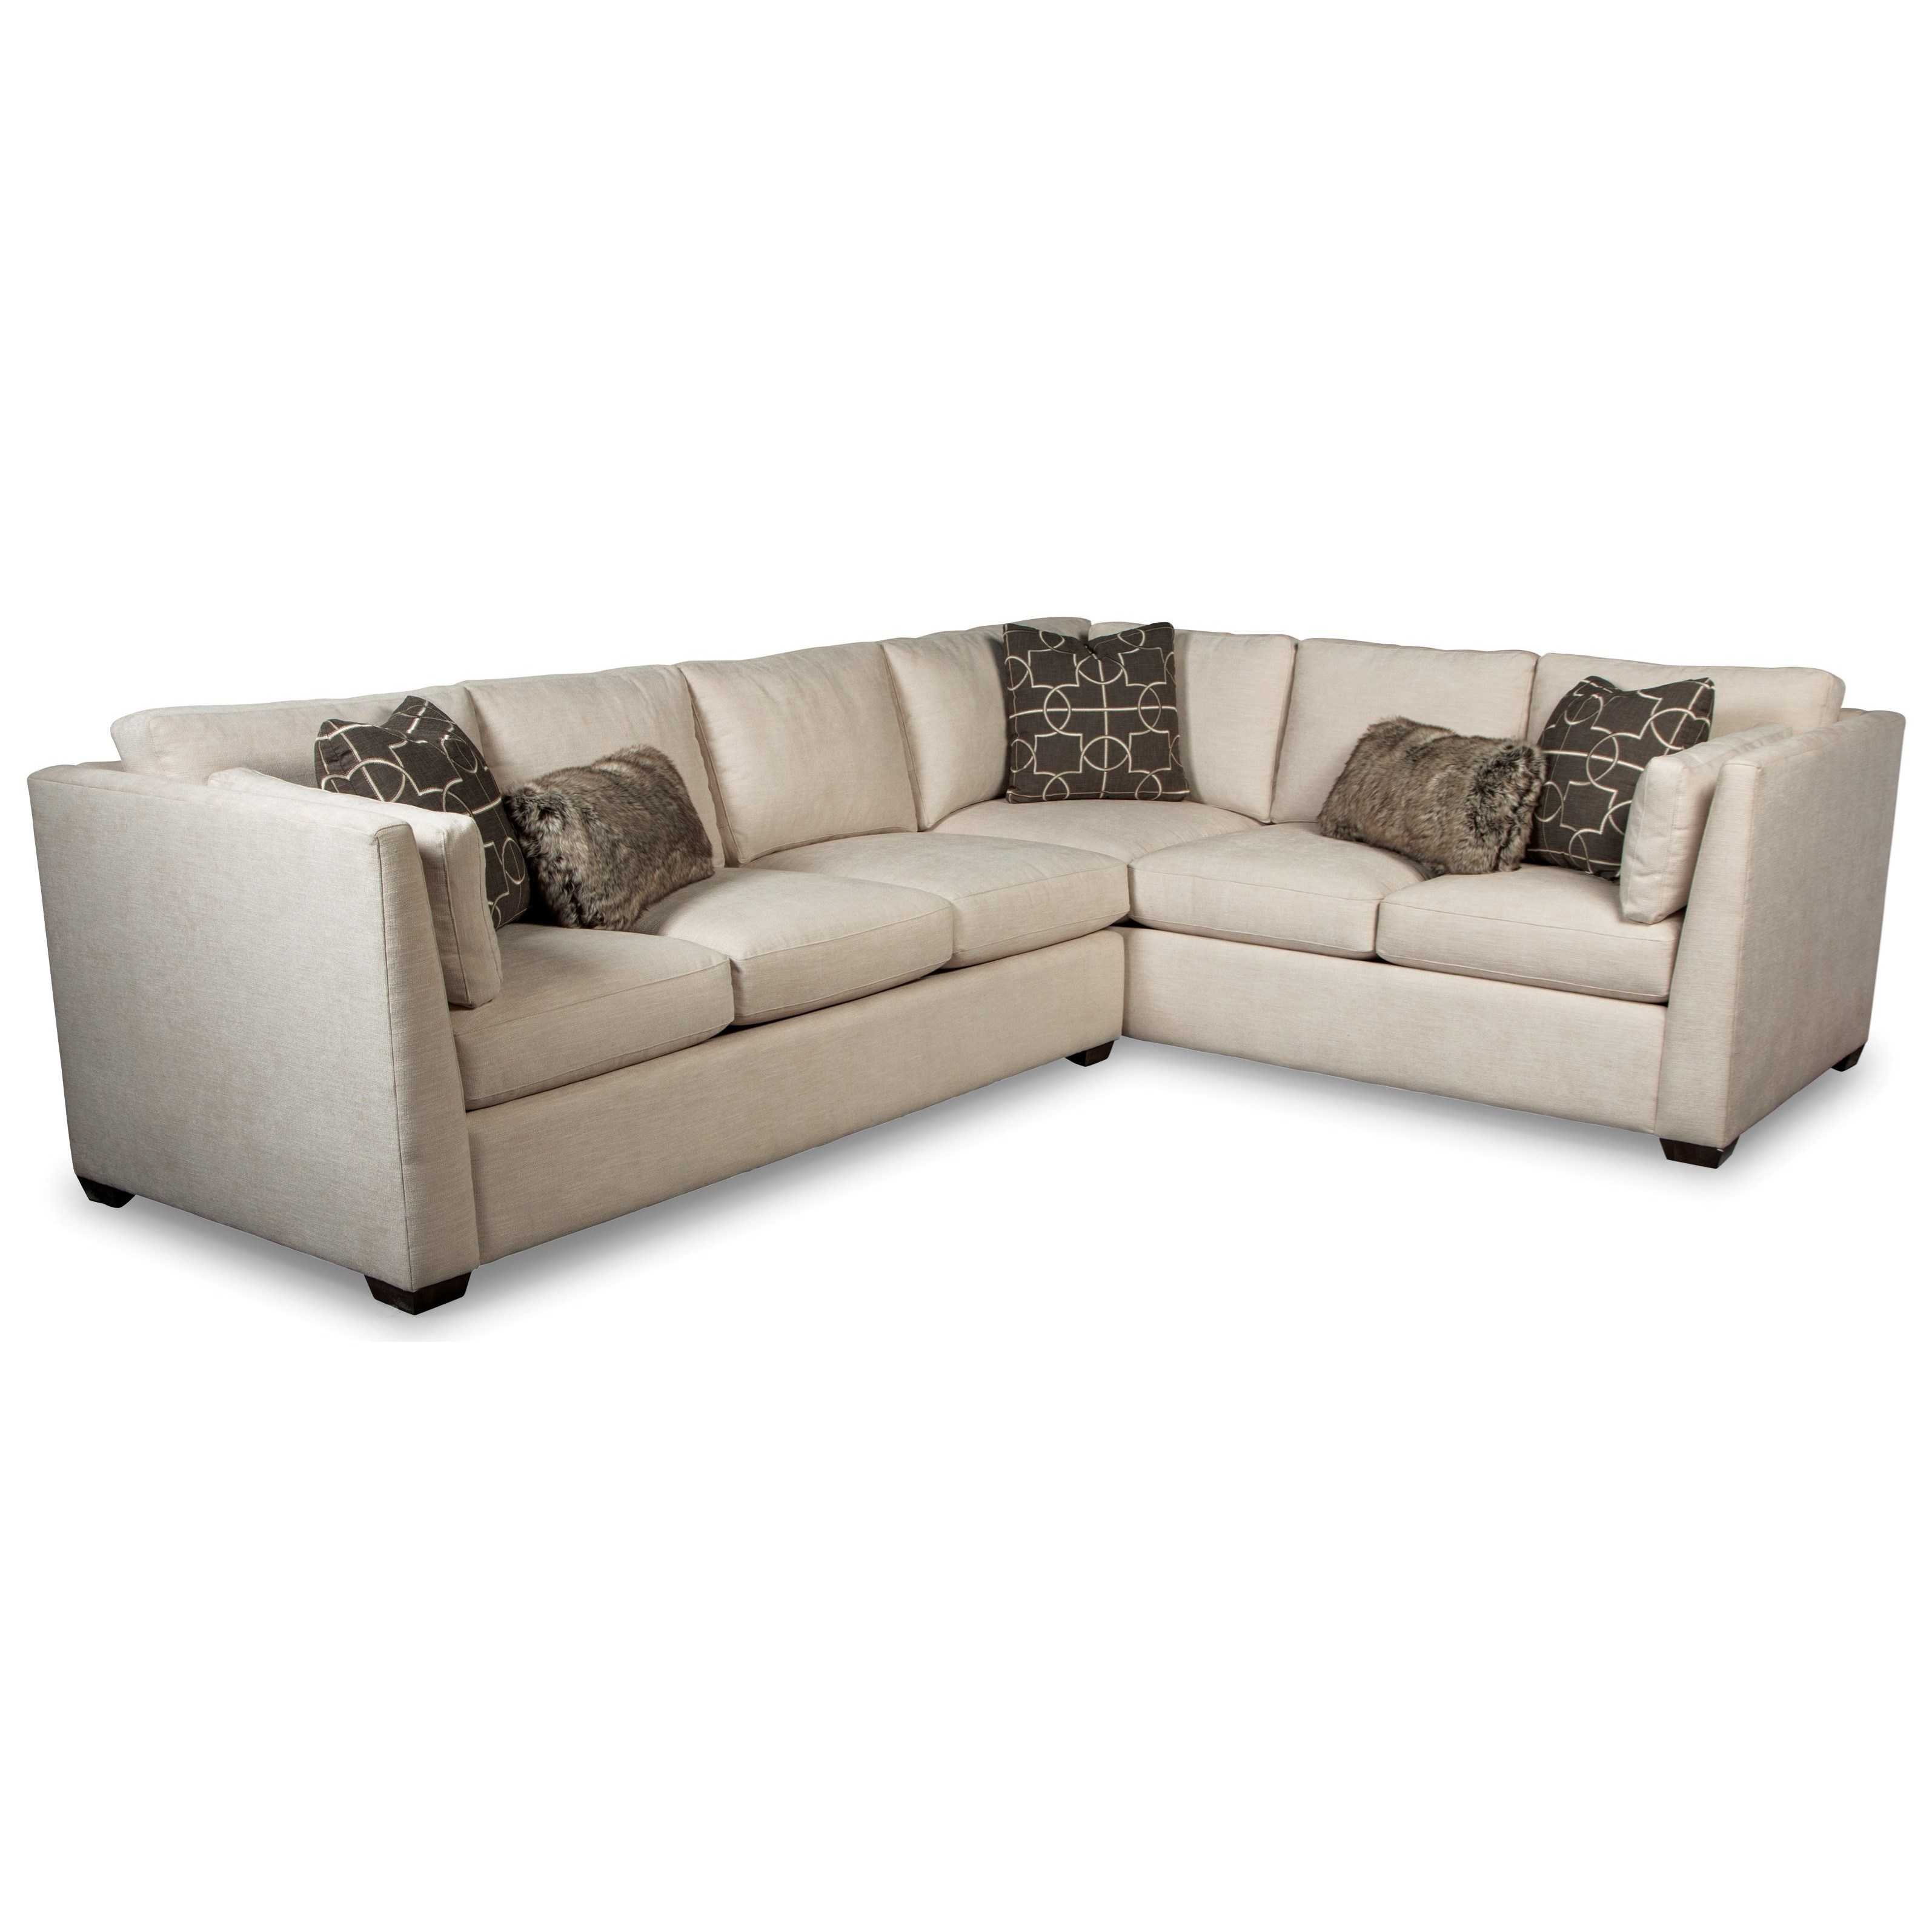 jamestown 2 piece sofa and loveseat group in gray argos ava review rachael ray home by craftmaster rr760100 contemporary two